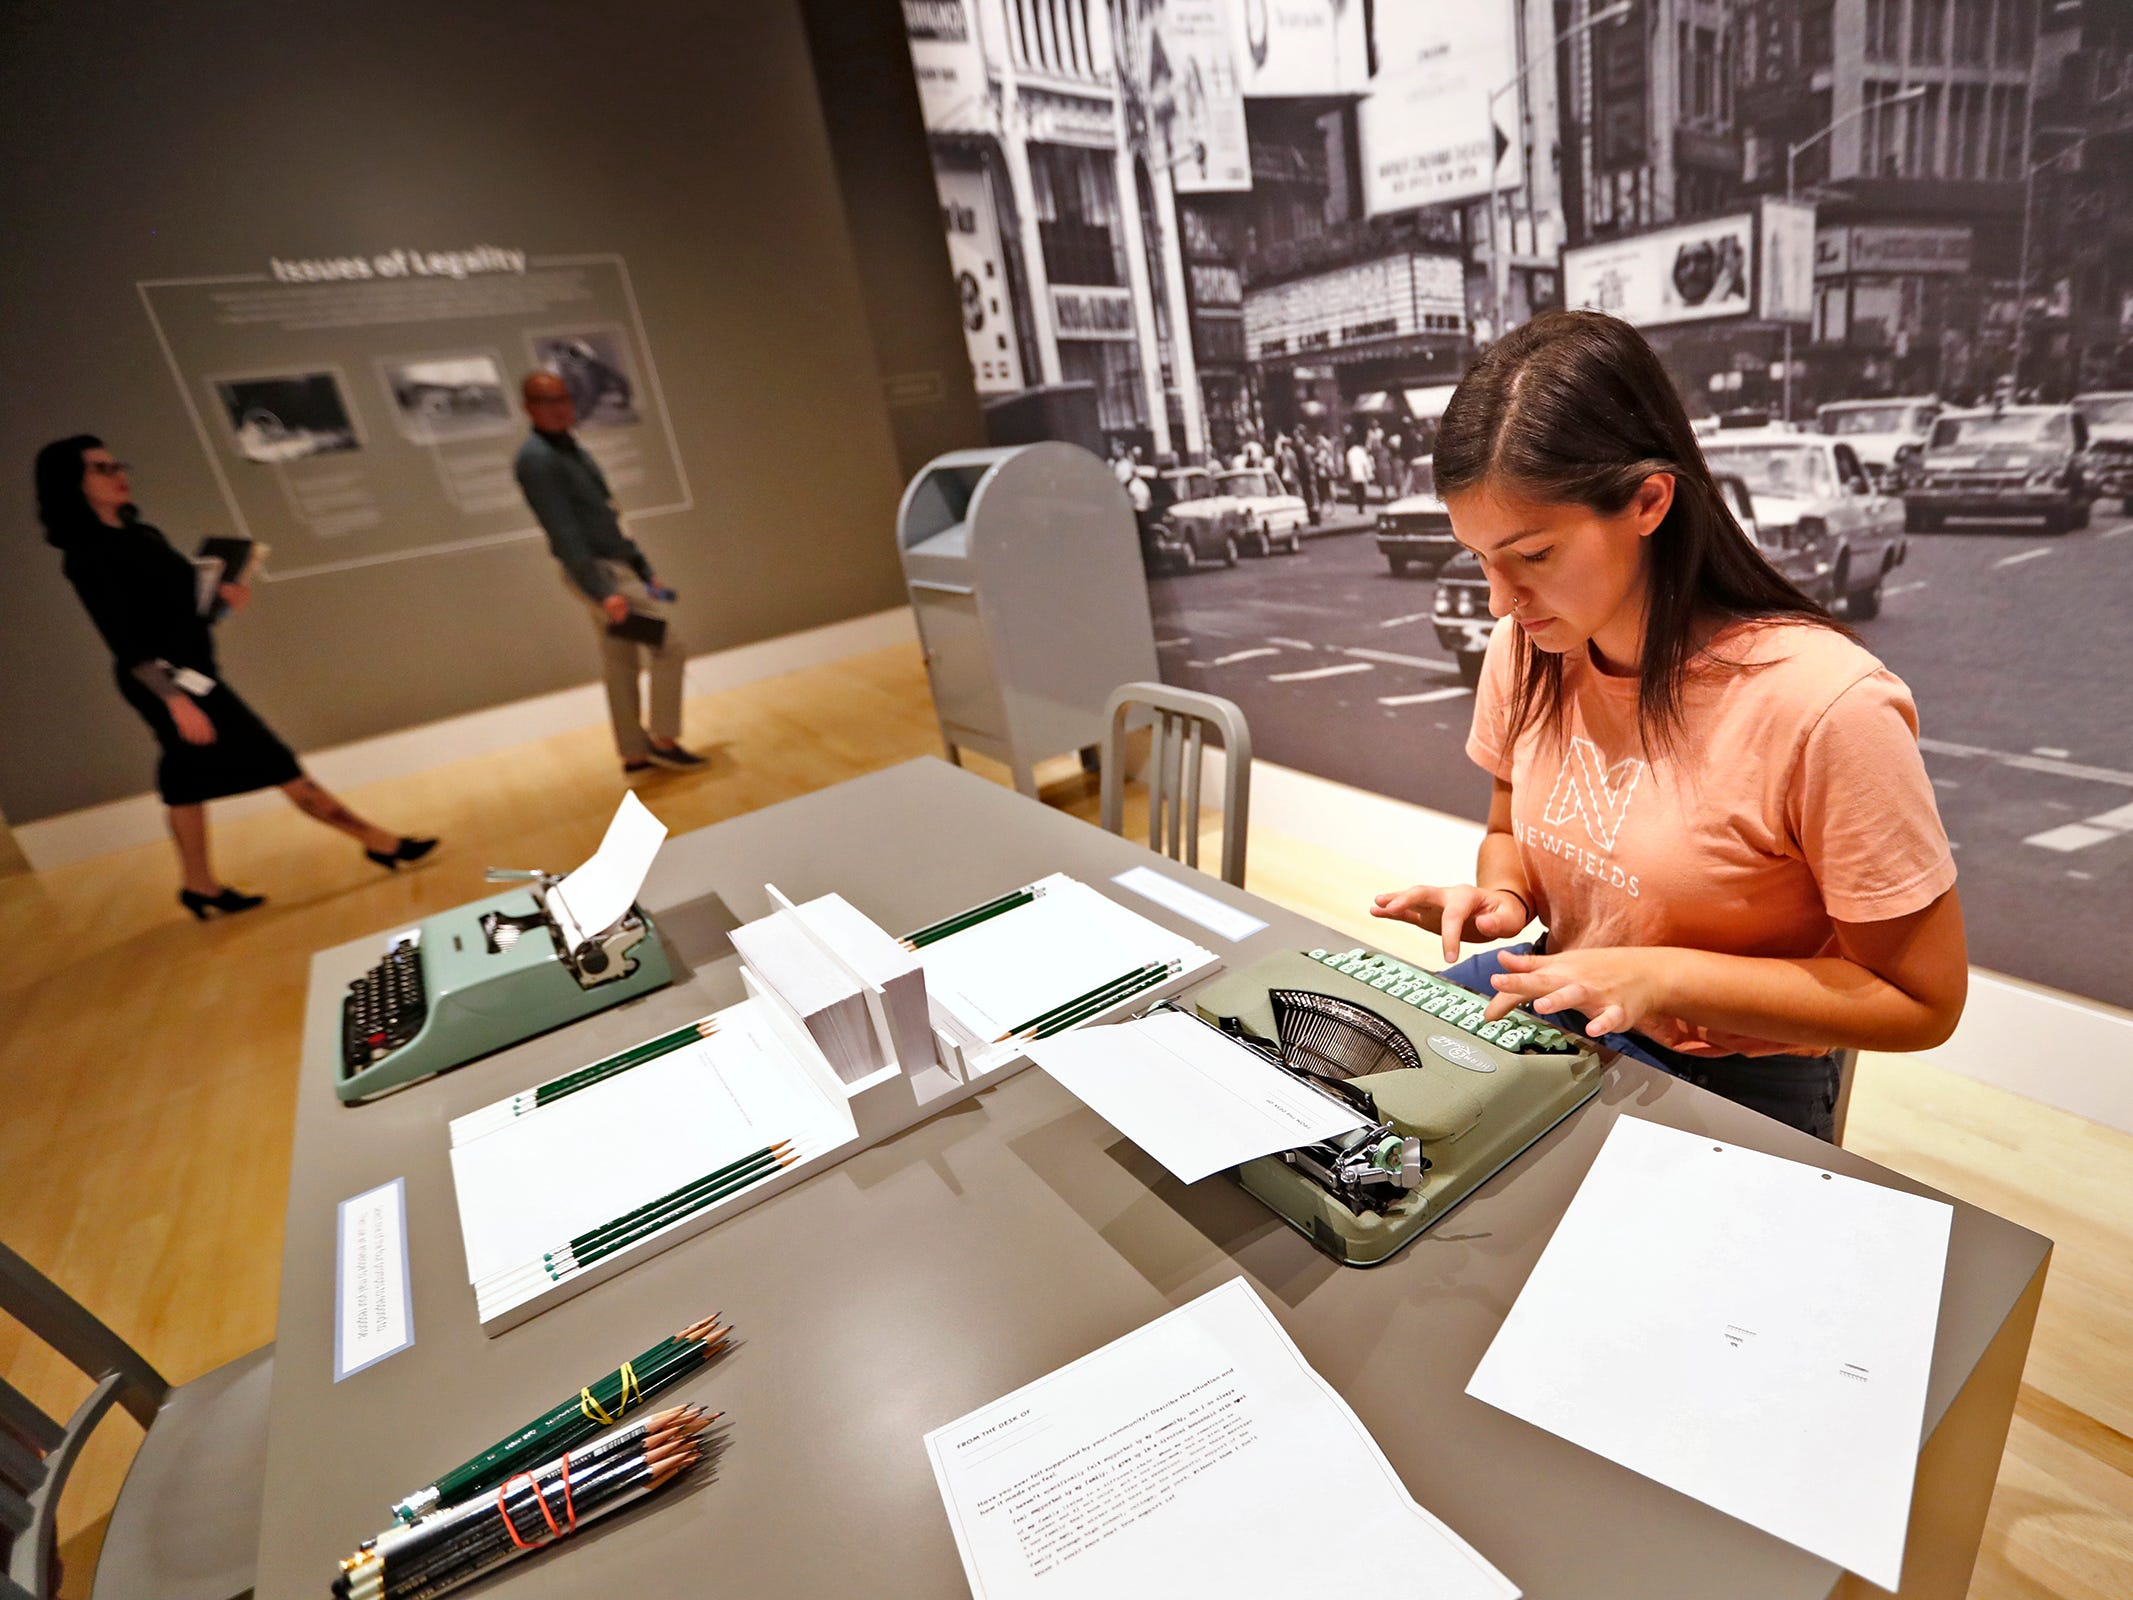 Interpretation Planner Wednesday Rees types a letter in an interactive part of the George Platt Lynes exhibit at Newfields, Wednesday, Sept. 26, 2018.  The letters, some to be displayed, allow the exhibit viewers to add their thoughts and experiences to certain offered questions. Lynes gained fame as a commercial and ballet photographer in the 1930s and 1940s, but he wanted to be known for the male nudes he captured of the male ballet dancers and others.  The exhibit runs Sept. 30, 2018 through Feb. 24, 2019.